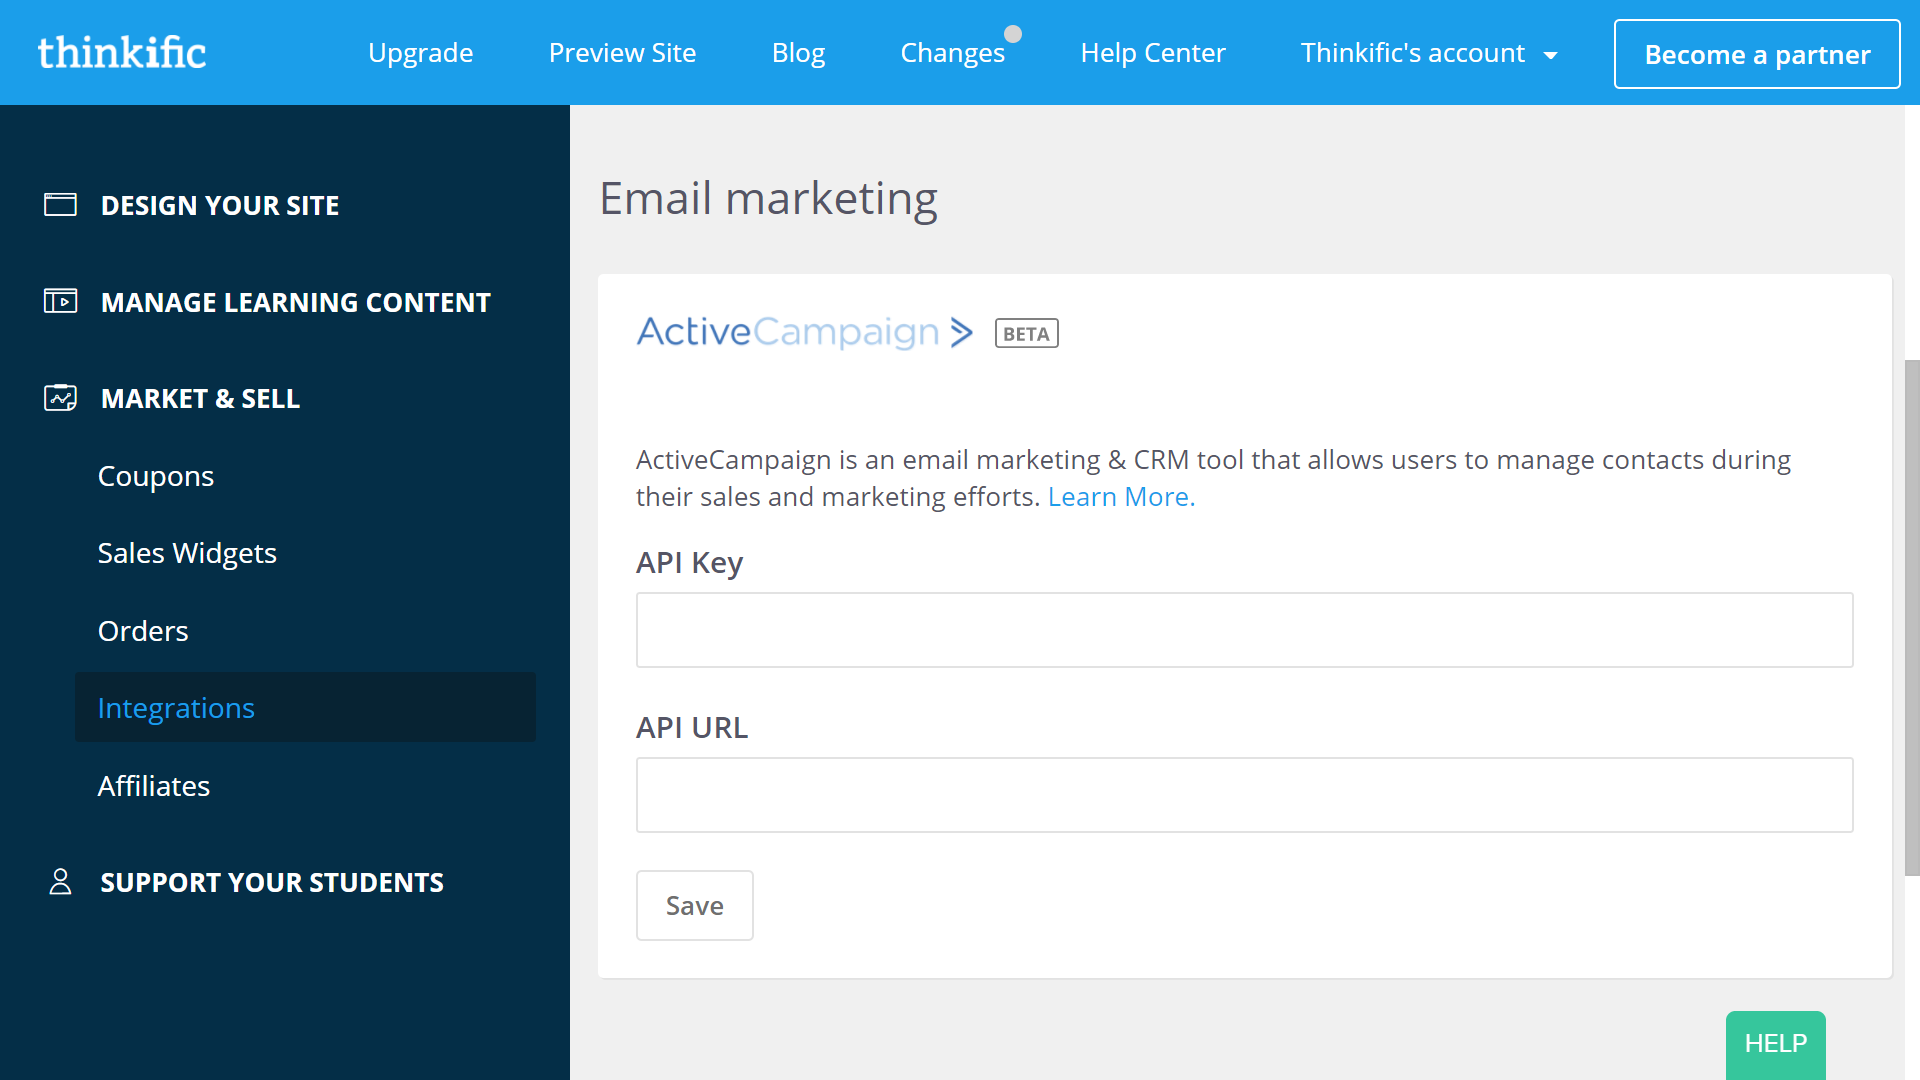 Integrate with ActiveCampaign on your Integrations page in the Thinkific Admin Dashboard